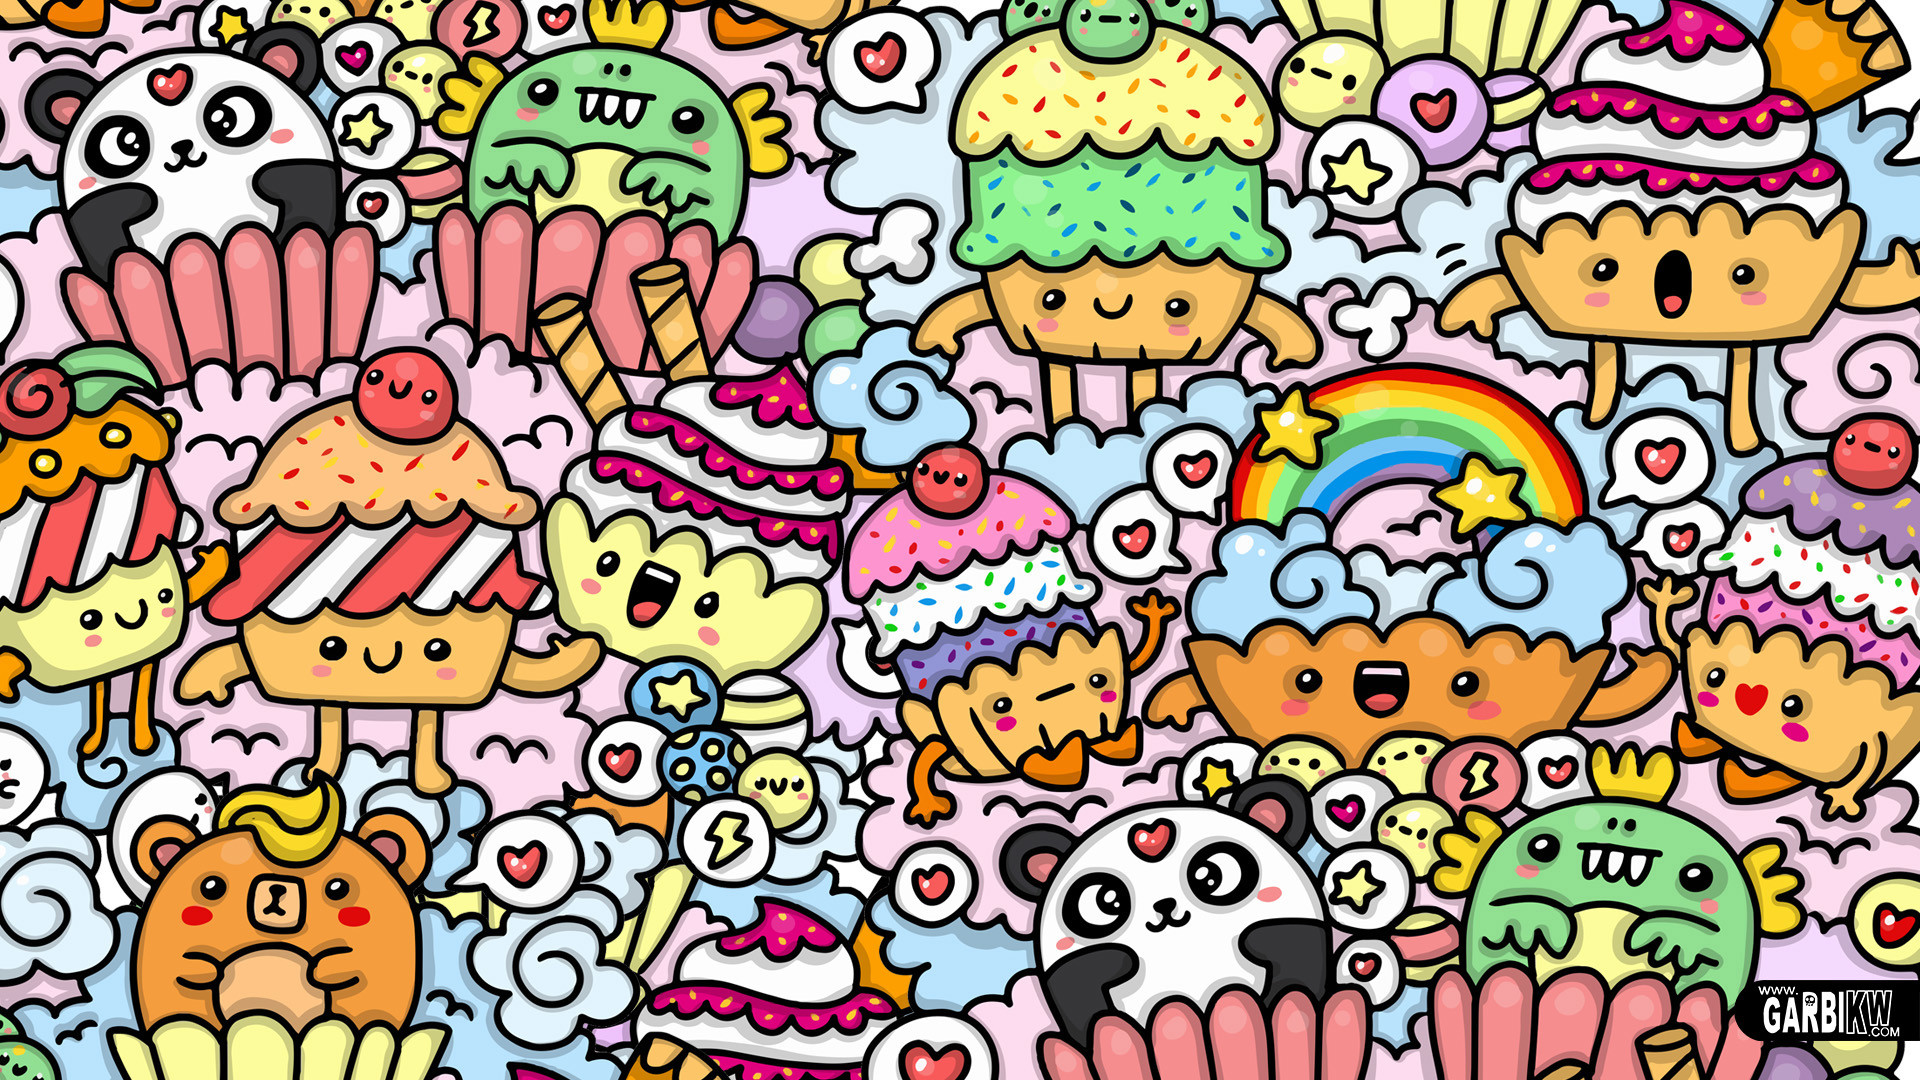 Doodle art wallpapers 52 images - Doodle desktop wallpaper ...